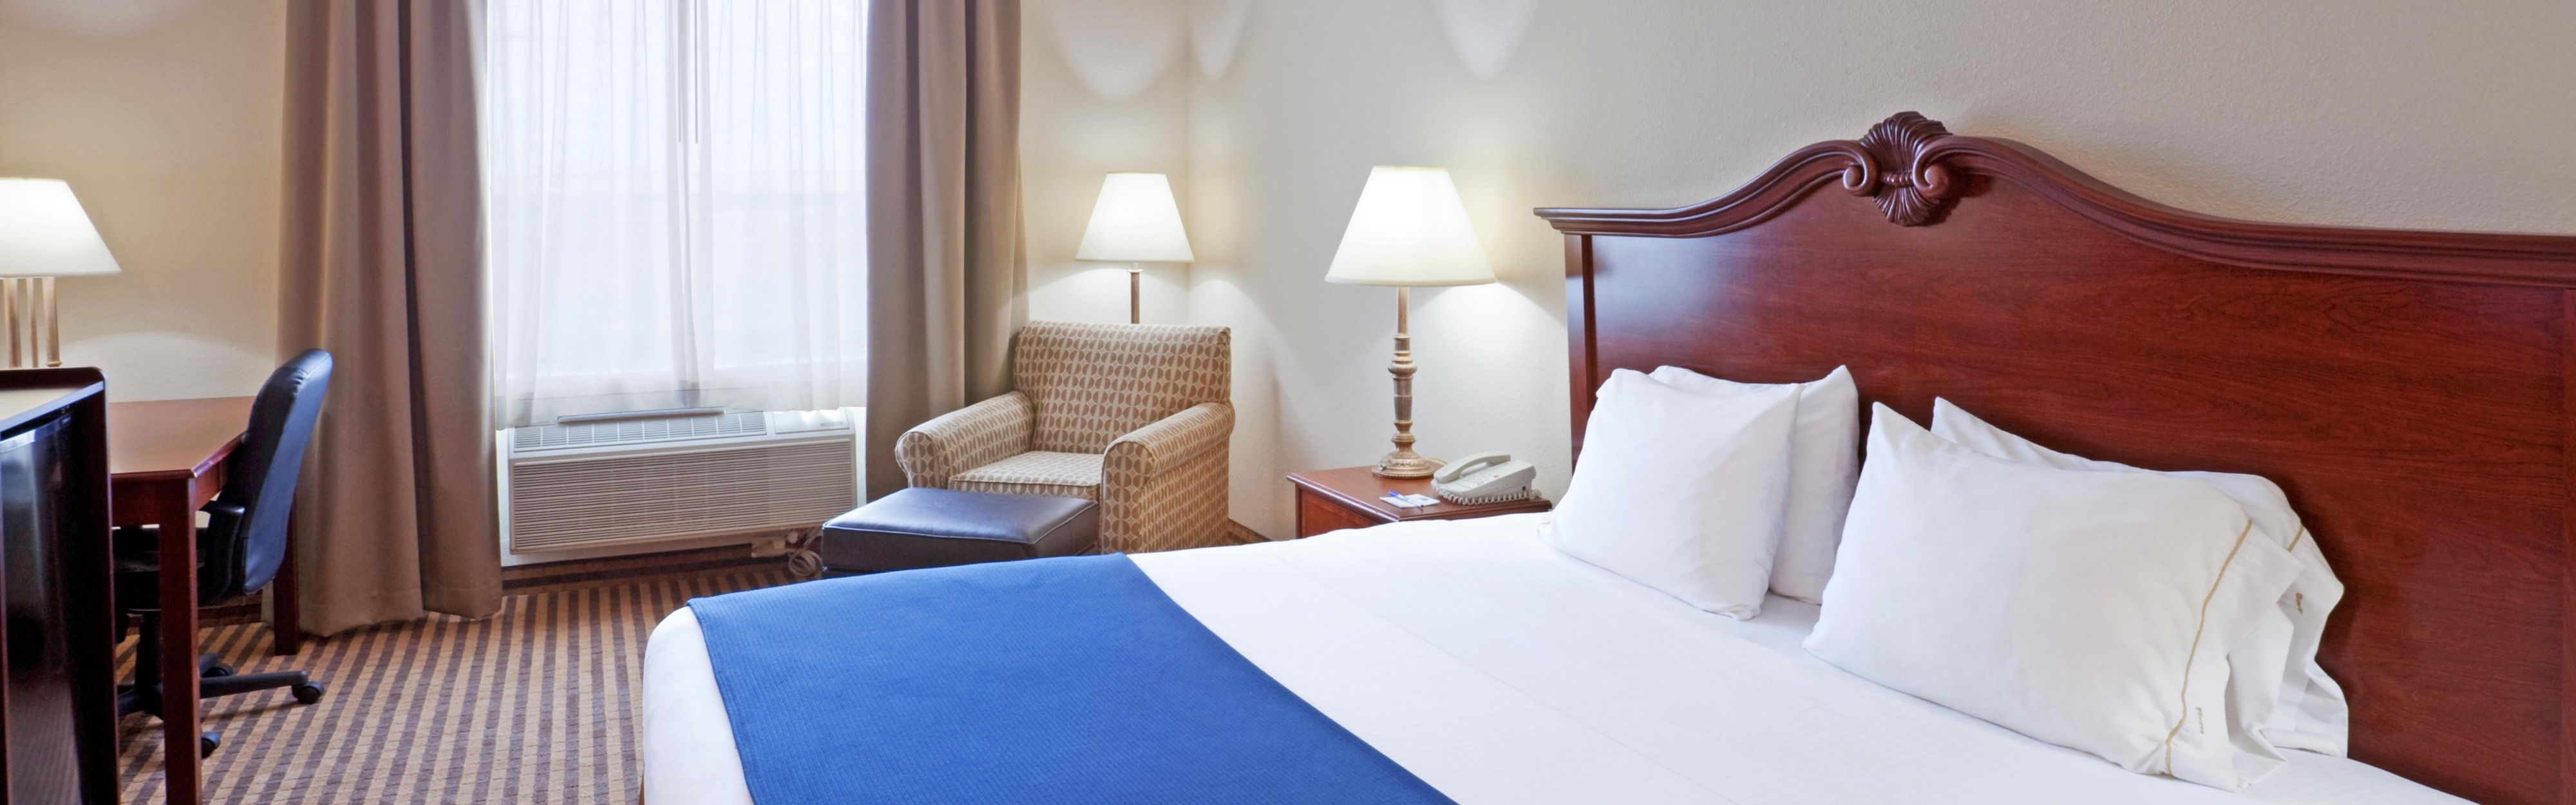 Holiday Inn Express & Suites Waxahachie image 1